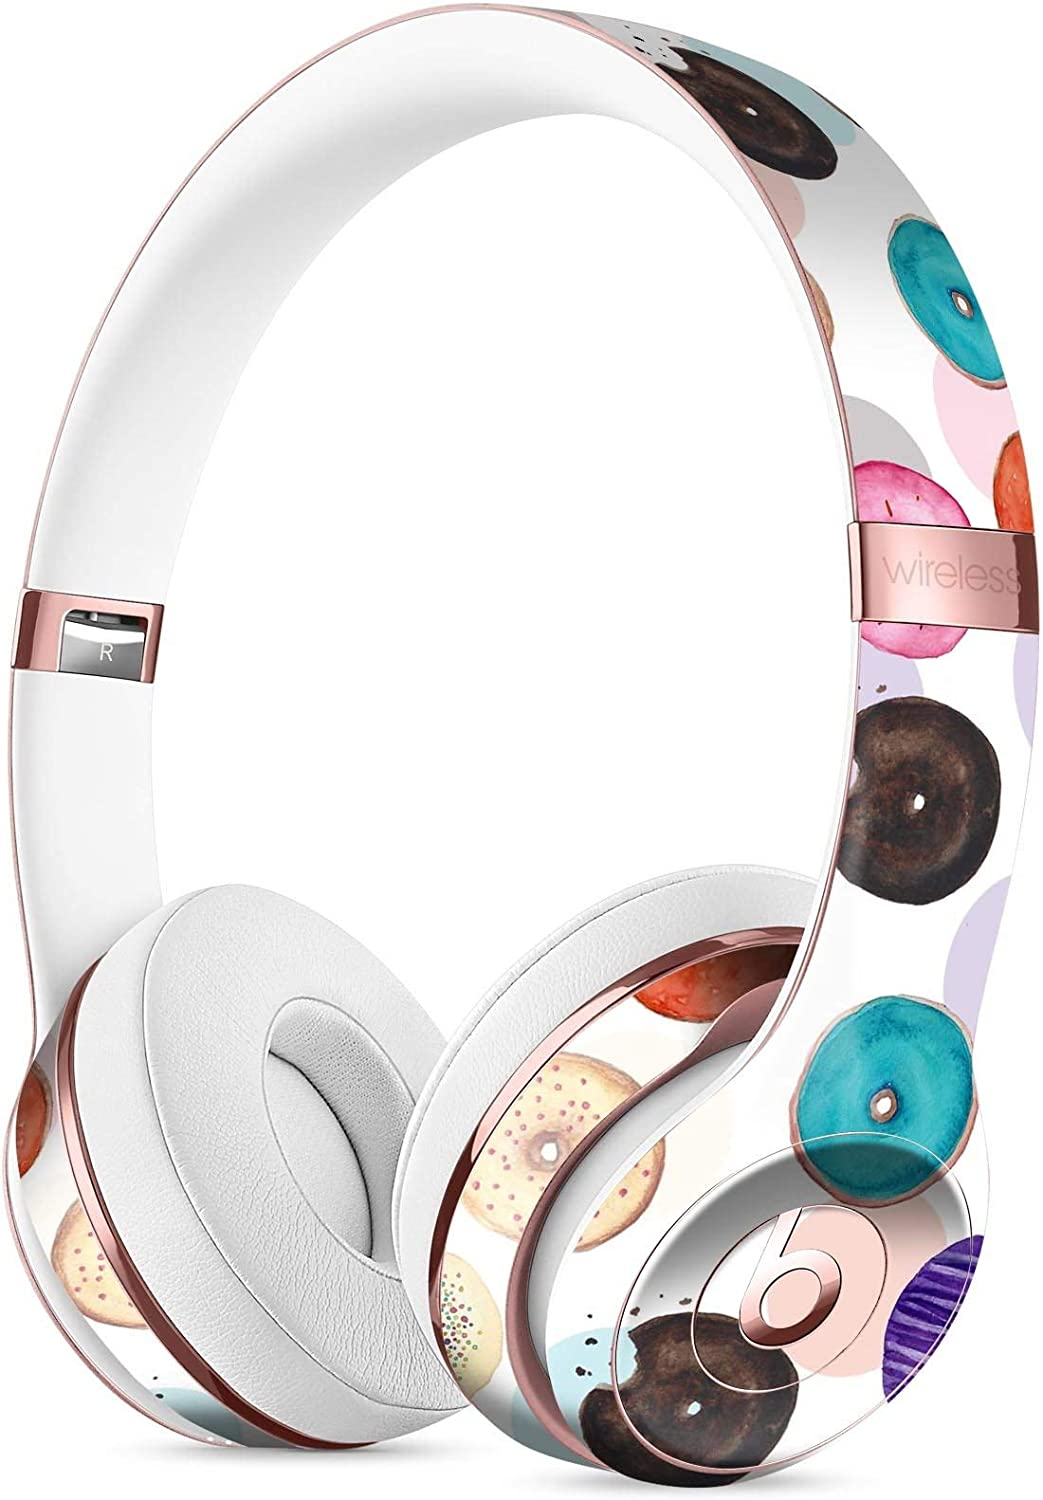 Amazon Com The Colorful Donut Overlay Designskinz Full Body Skin Kit For The Beats By Dre Solo 3 Wireless Headphones Ultra Thin Matte Finished Protective Skin Wrap Home Audio Theater